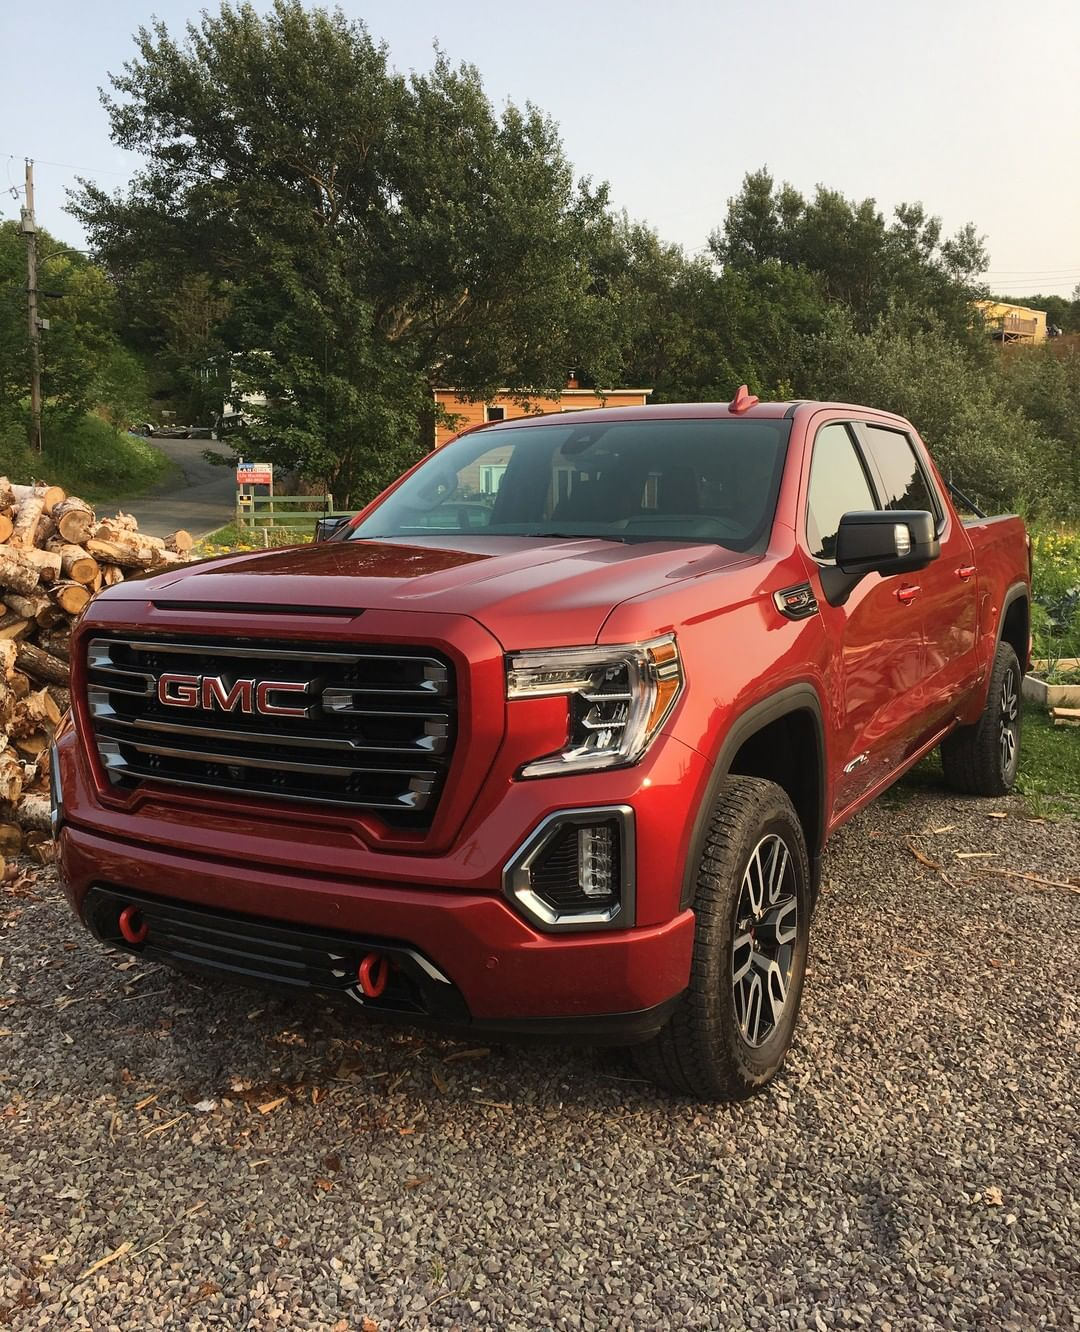 Automobile Magazine On Instagram We Re Driving The 2019 Gmc Sierra At4 For The First Time What Do You Want To Know About Th Gmc Trucks Gmc Trucks Sierra Gmc